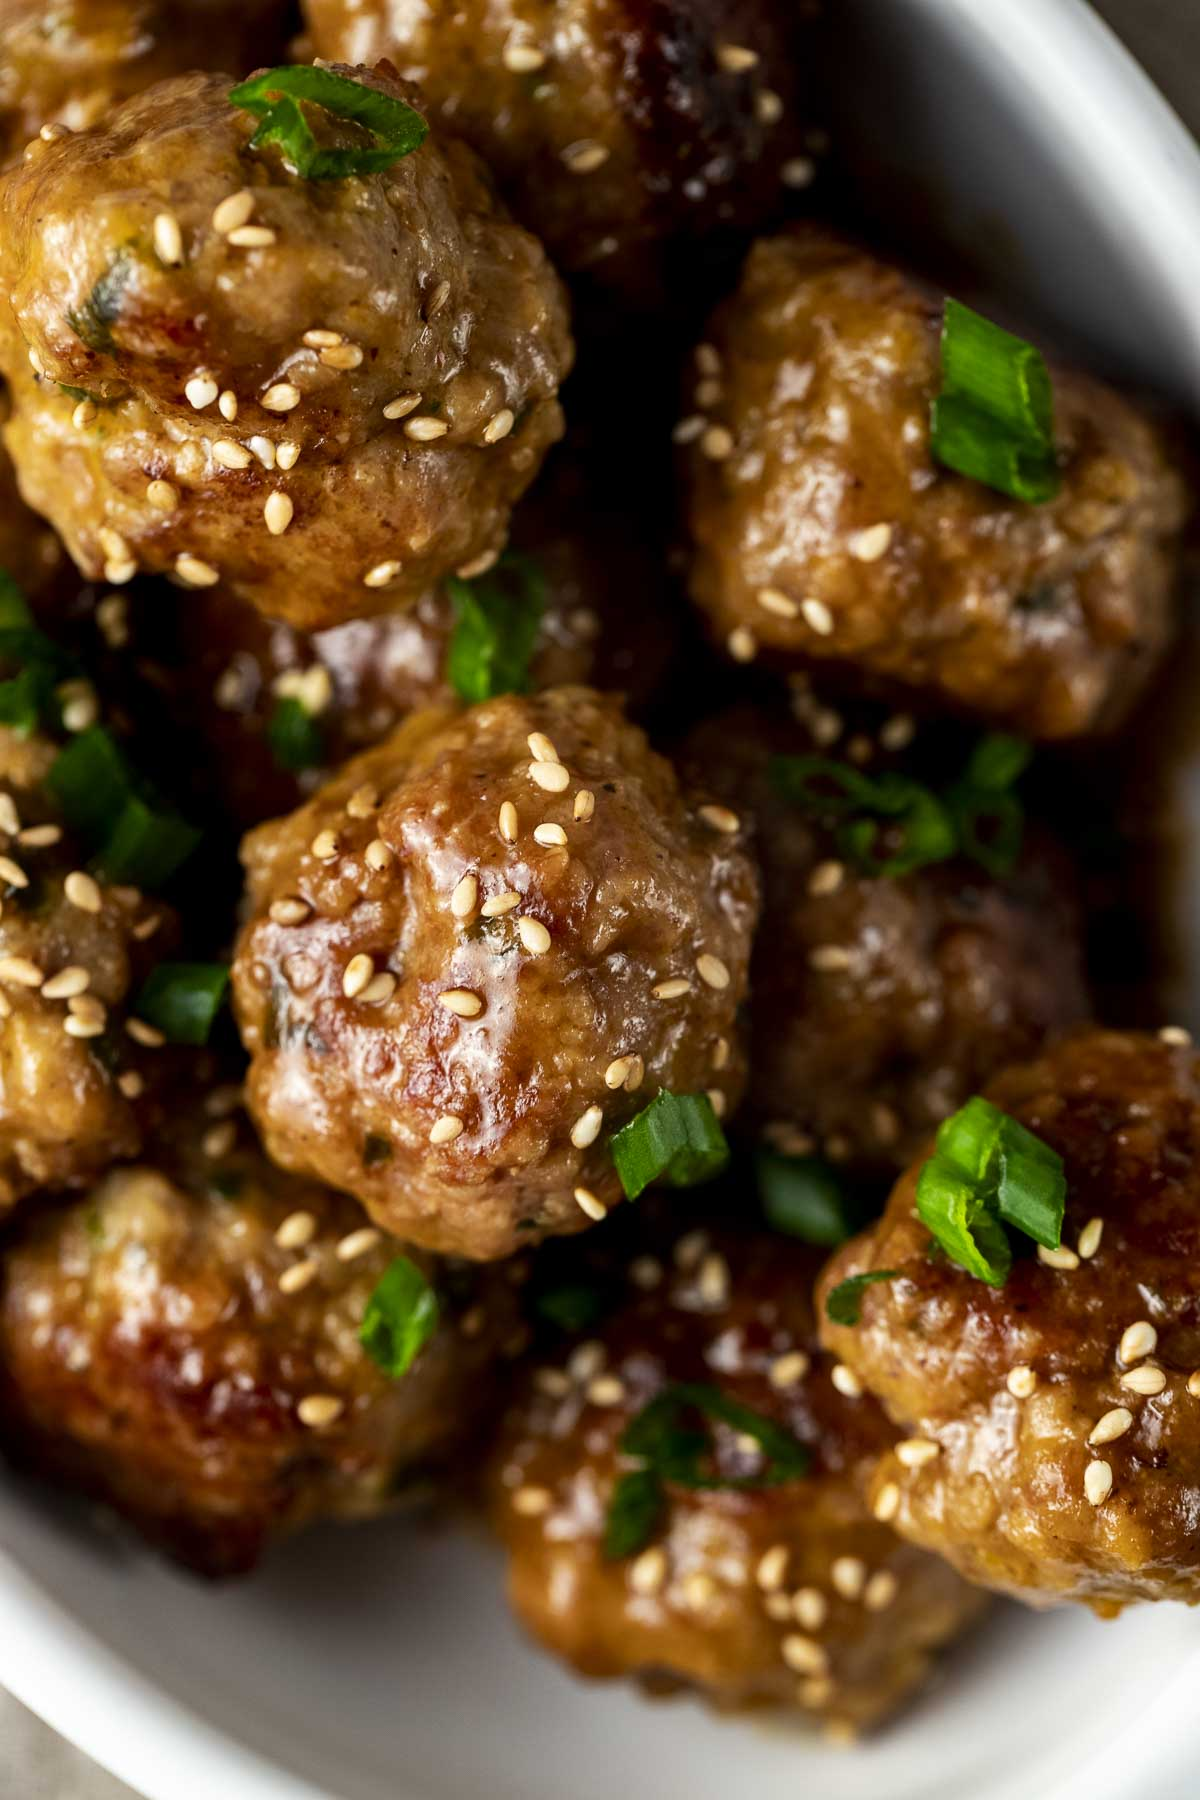 glazed meatballs with sesame seeds and green onions